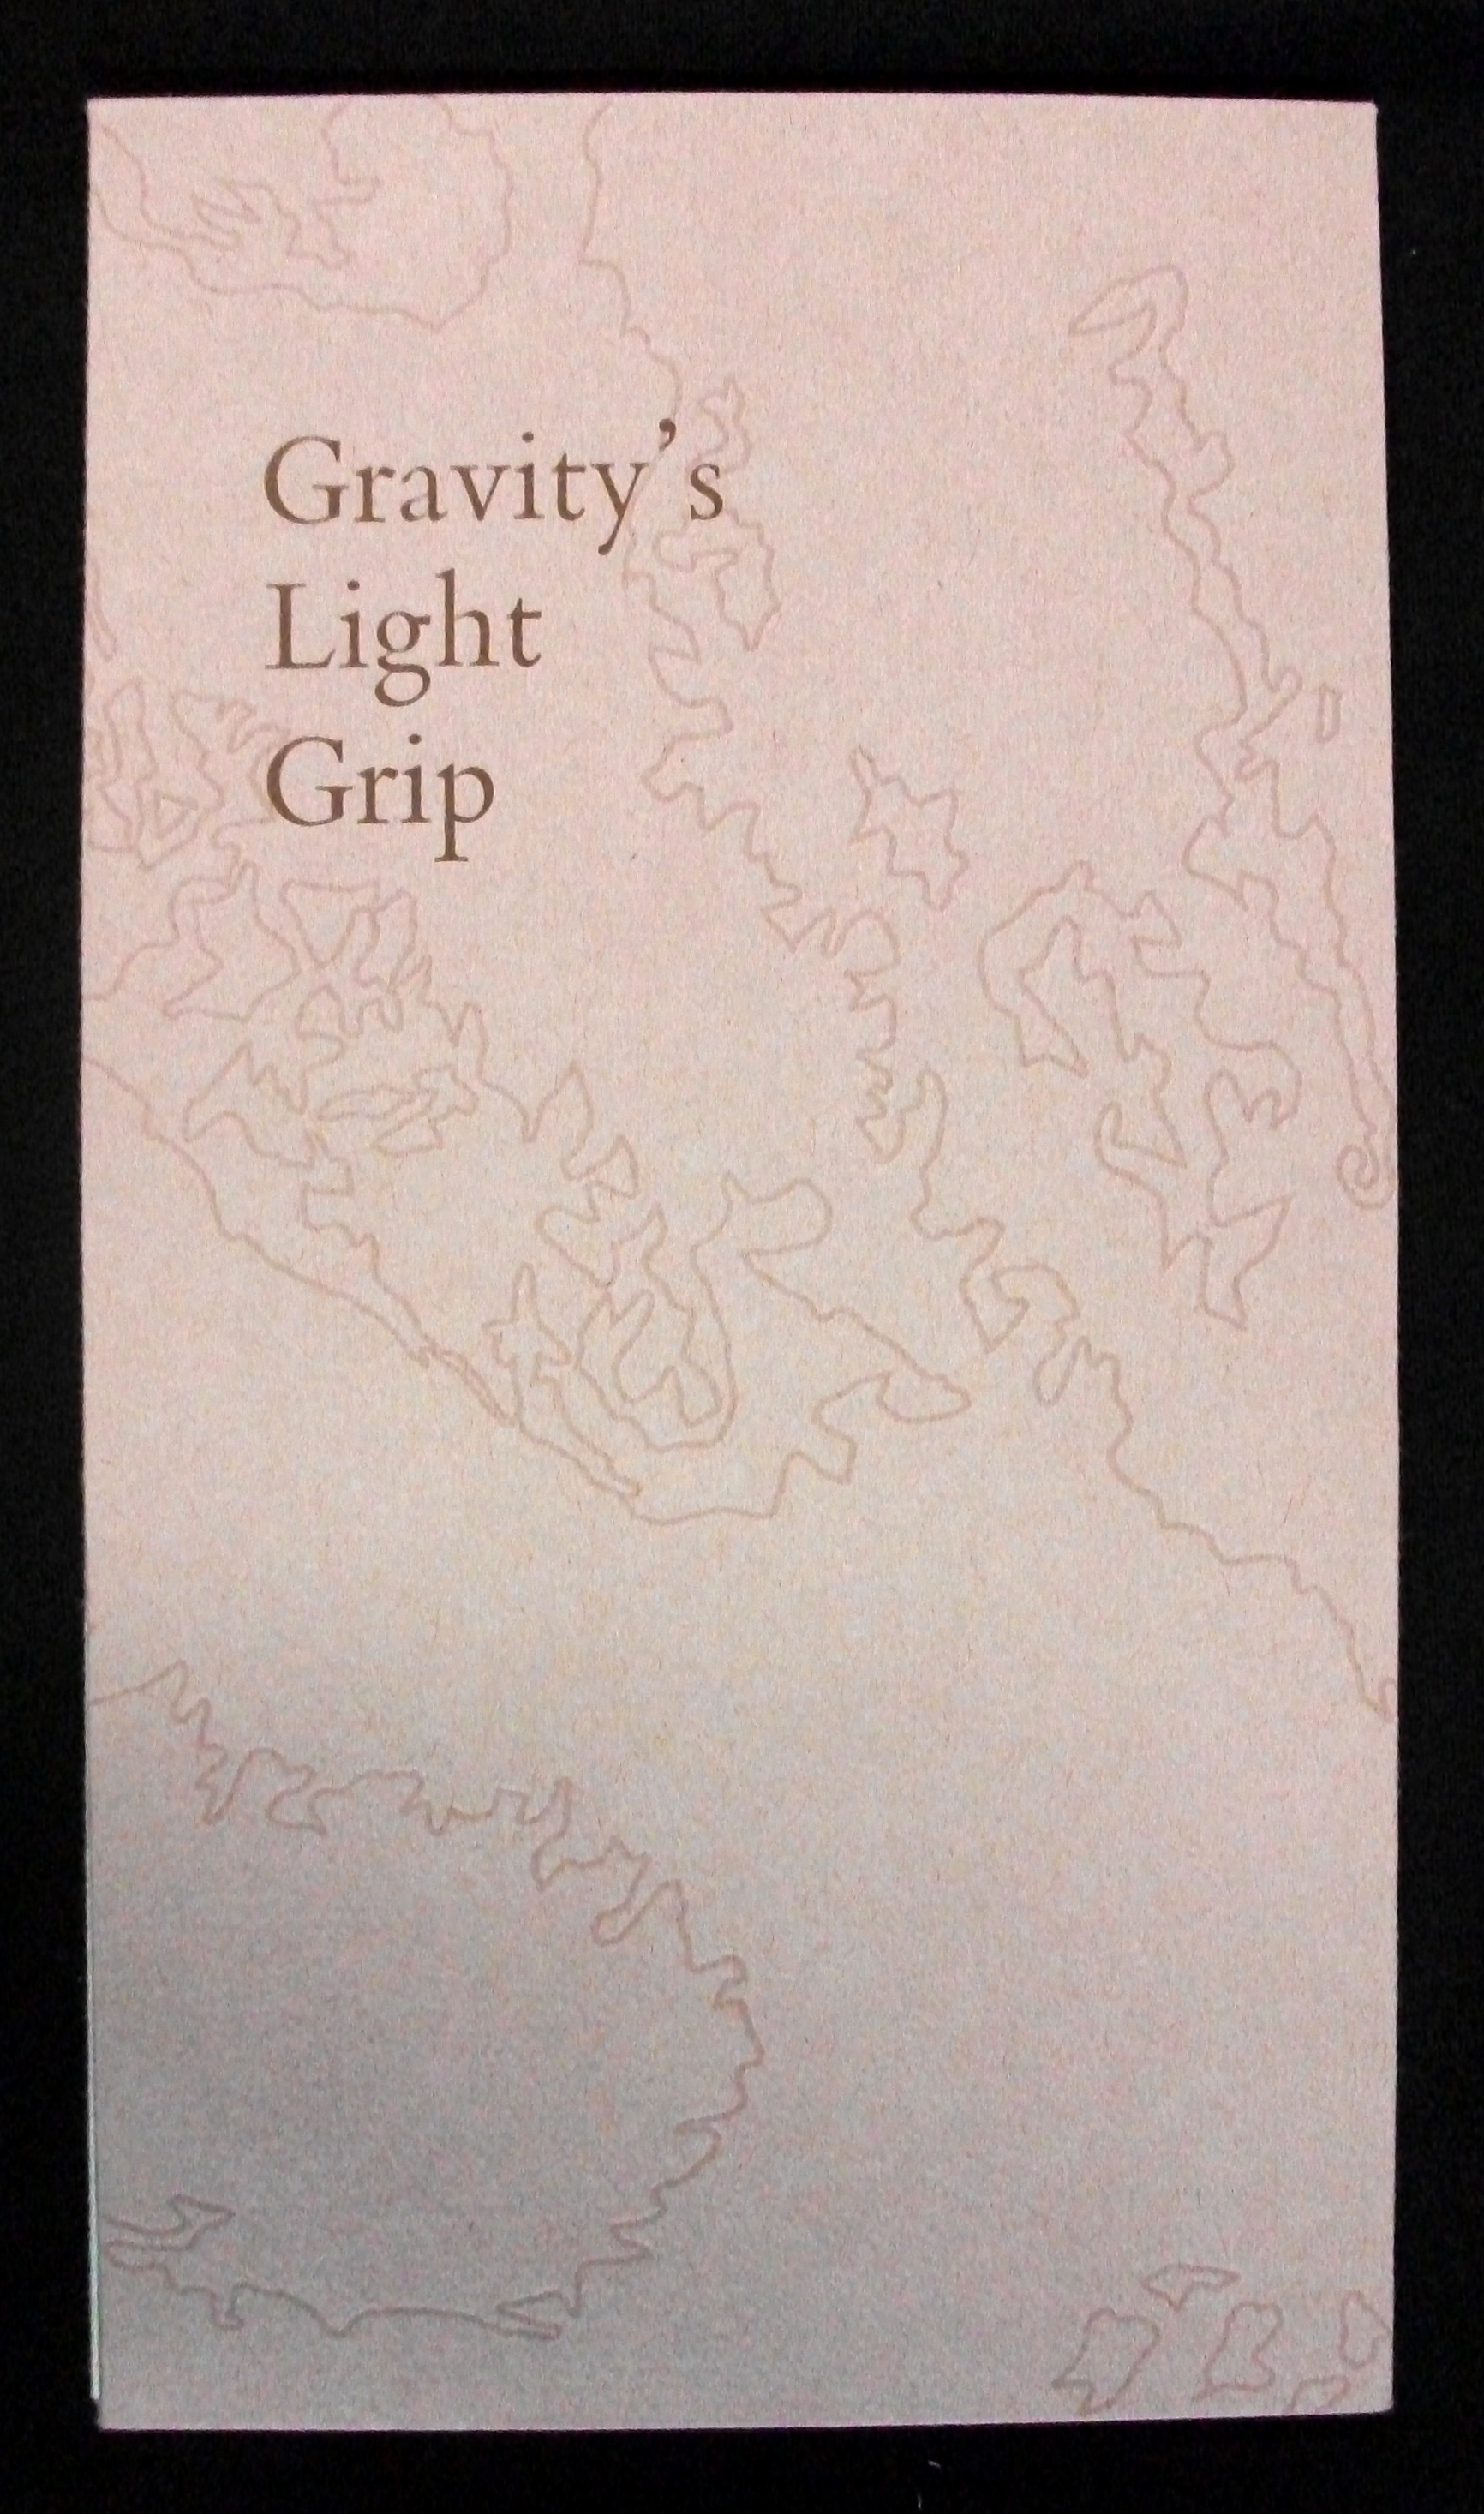 Amy Pirkle,  Gravity's Light Grip,  Letterpress and Reduction Linocut, 2007, Tuscaloosa, AL